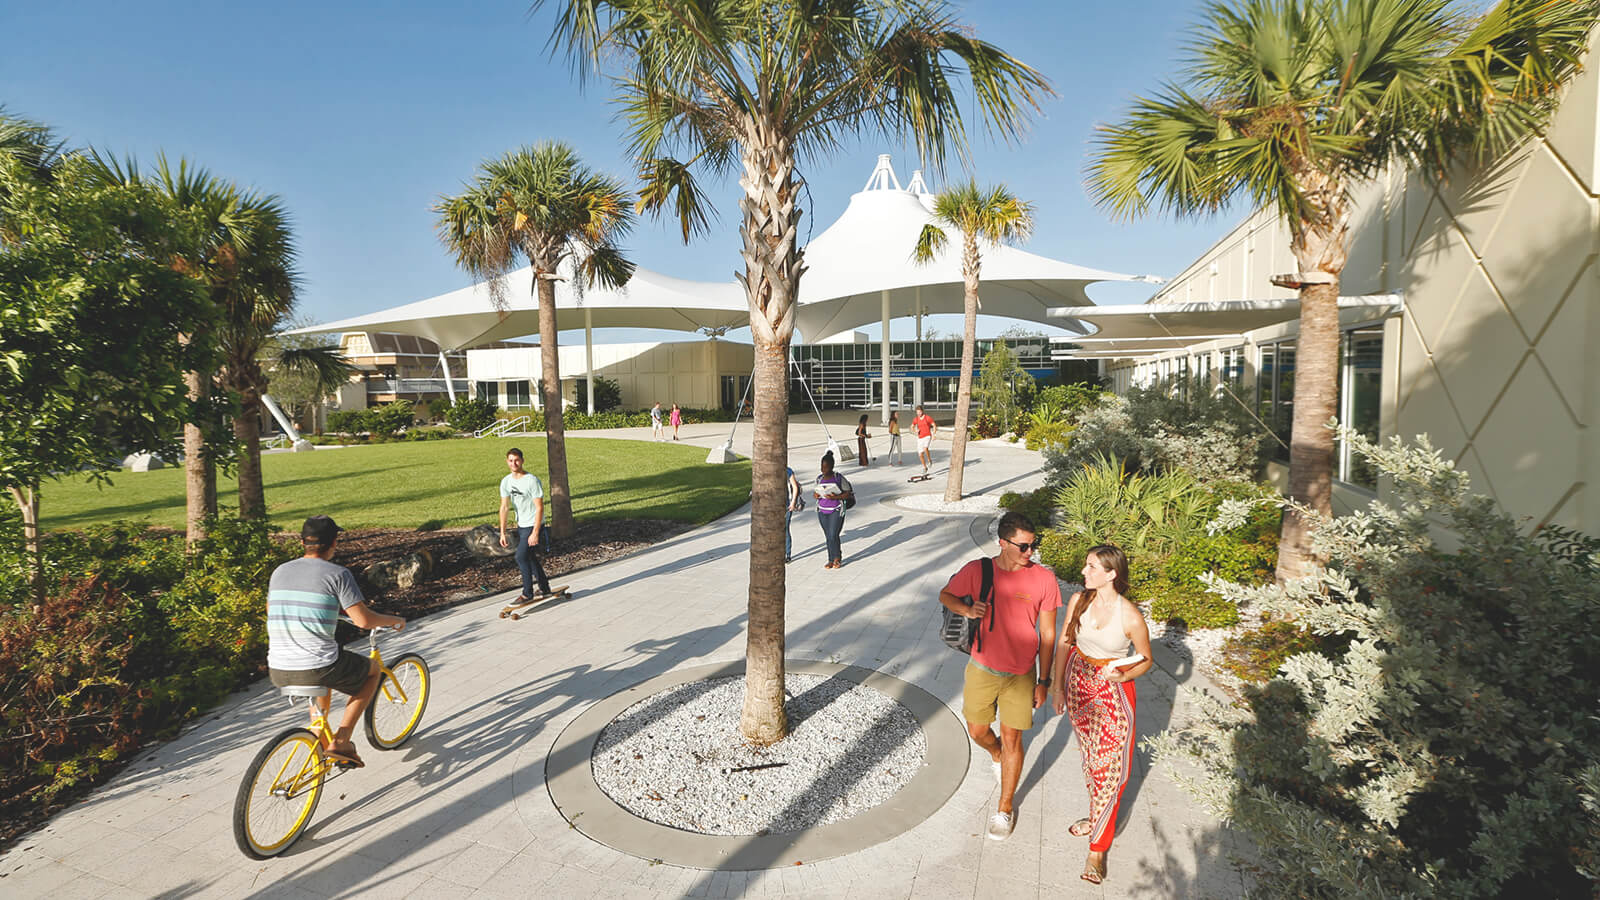 A view of a bustling campus at Eckerd College.